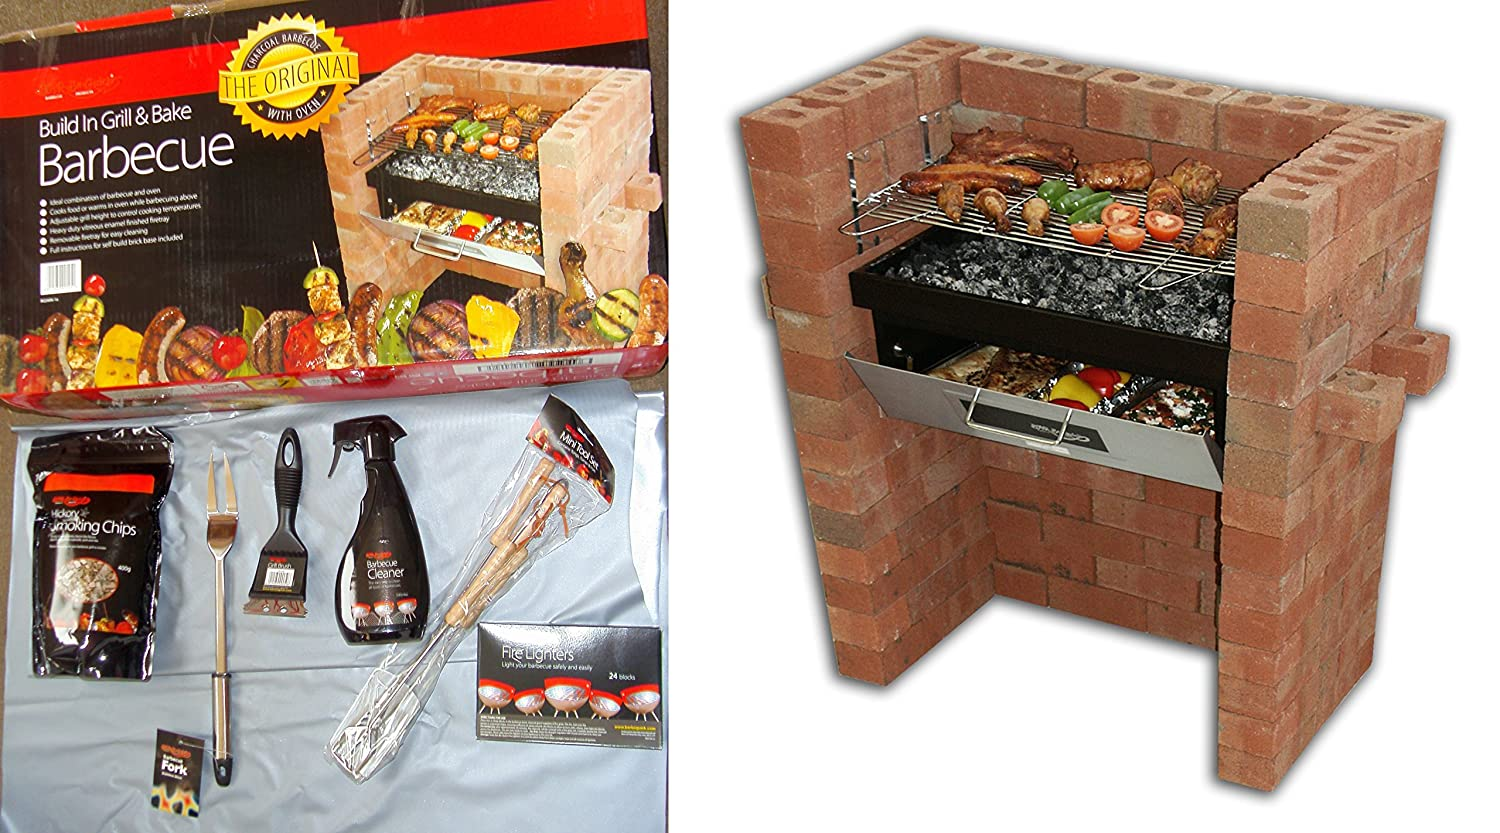 The Original Bar-Be-Quick Build In Grill & Bake Barbecue + Starter Pack consisting of- Firelighters,3 Piece Utensil Kit, Grill Brush, BBQ Fork, Hickory Smoking Chips + BBQ Cleaner! LD-UM0O-PDWC